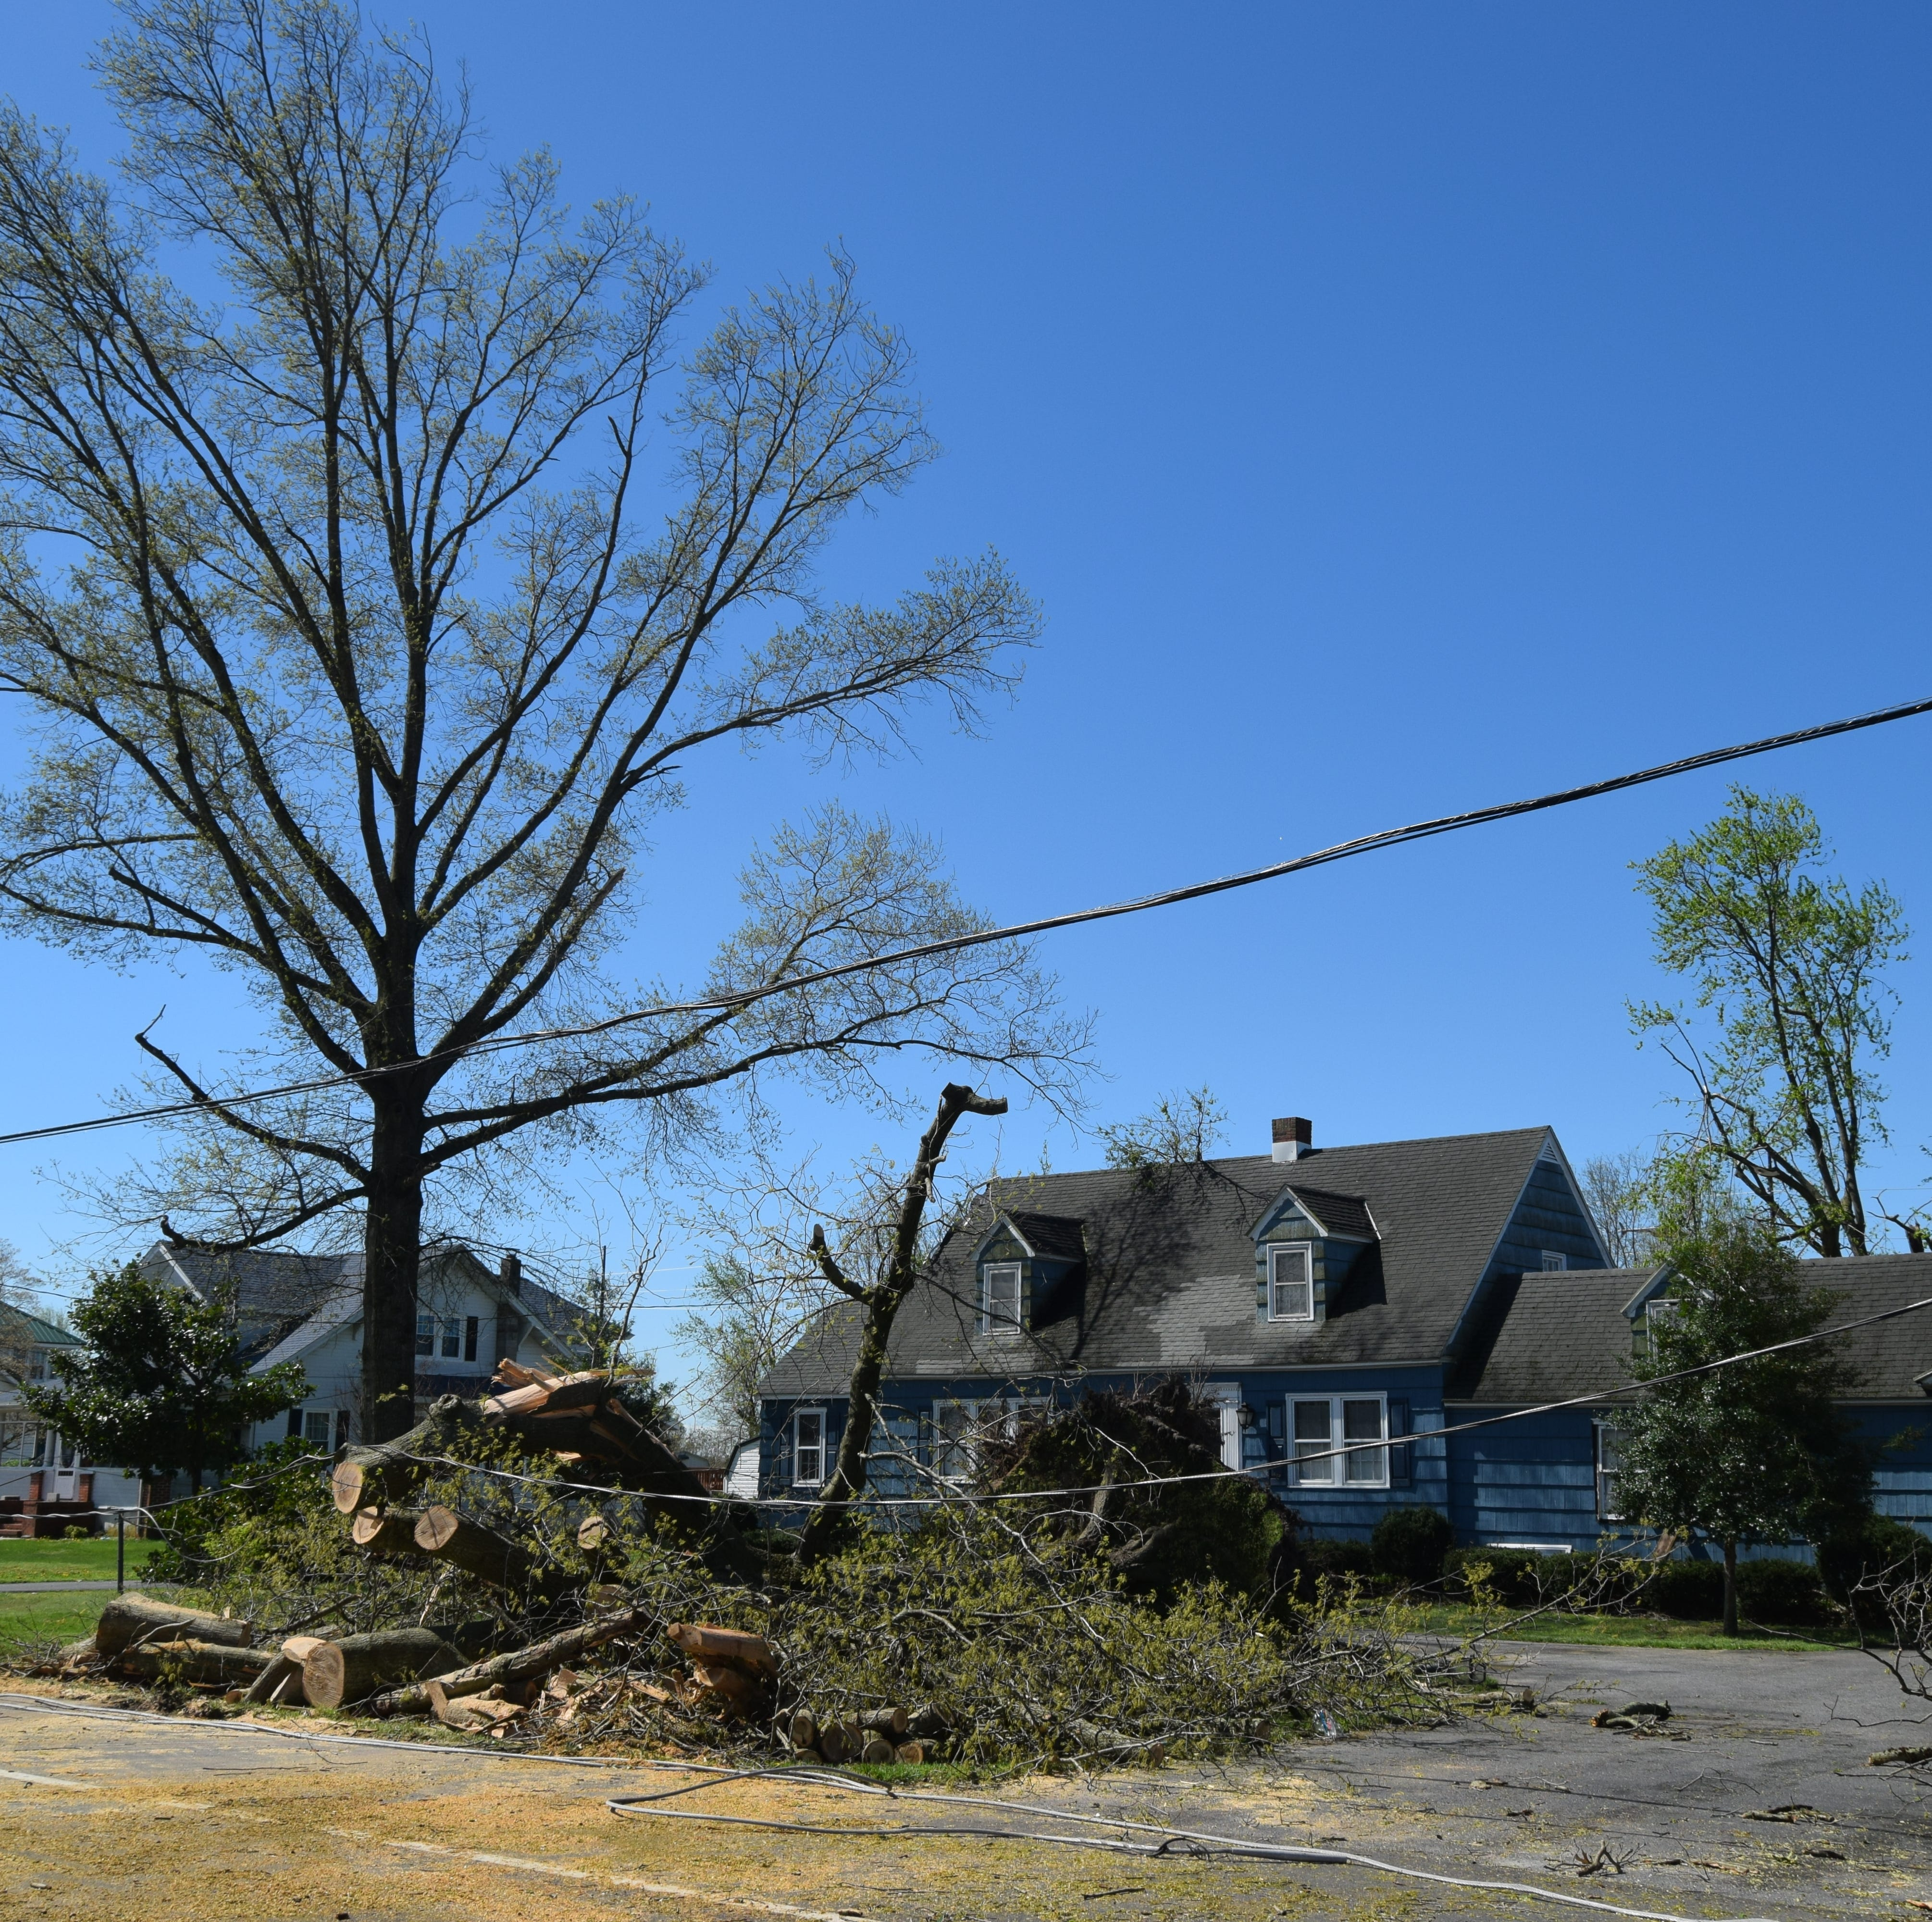 Second tornado hit southern Delaware on Monday, experts say